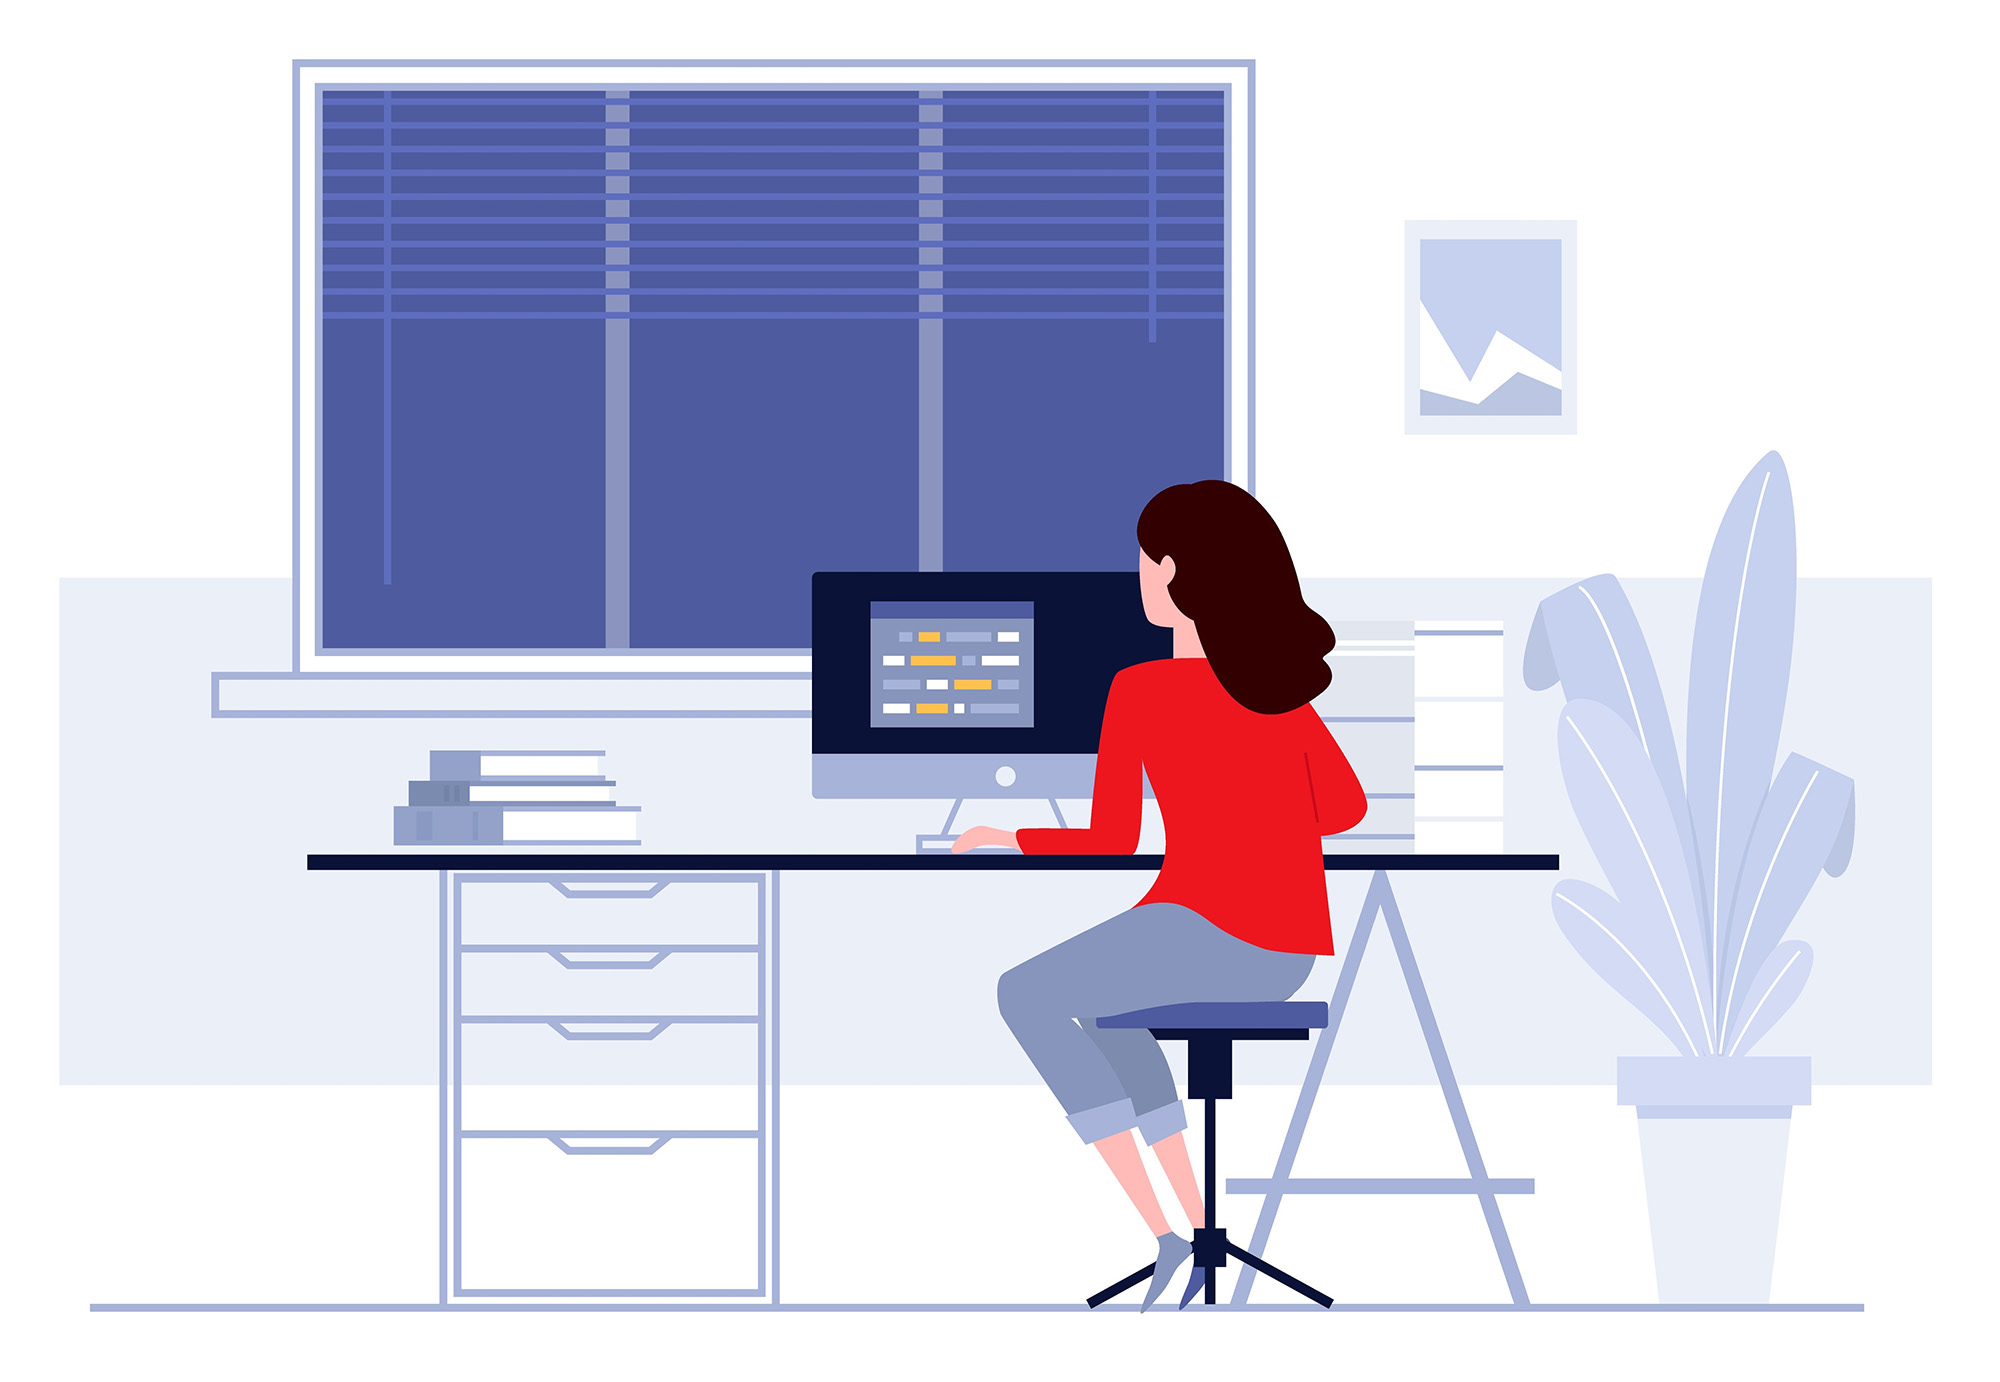 Illustration of a woman sitting at a desktop computer.